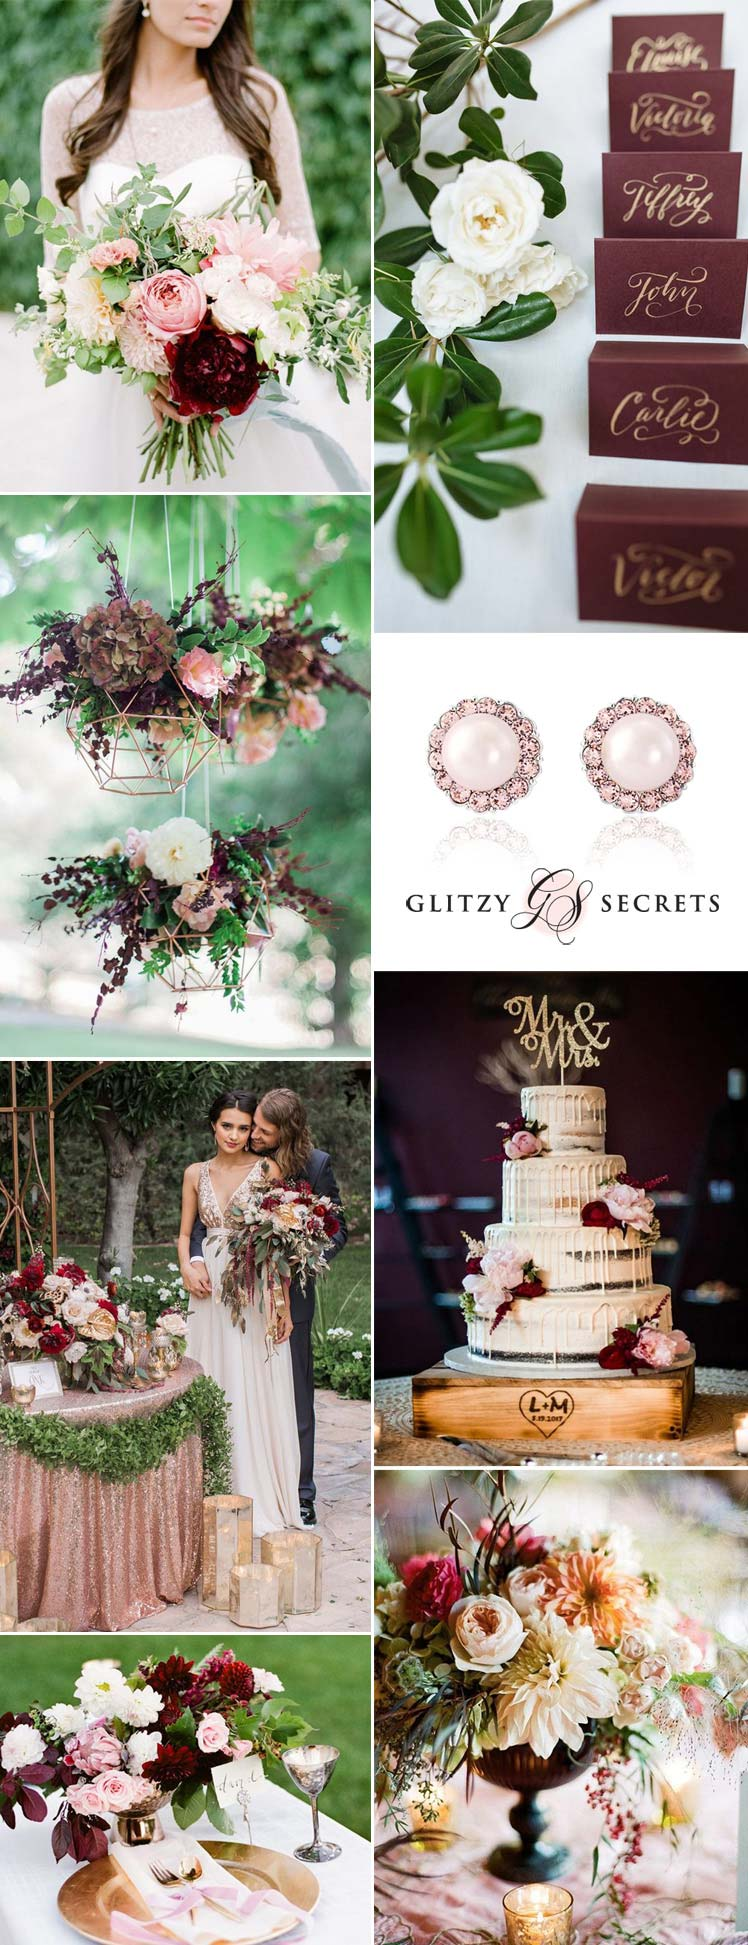 Ideas for a blush and burgundy wedding theme